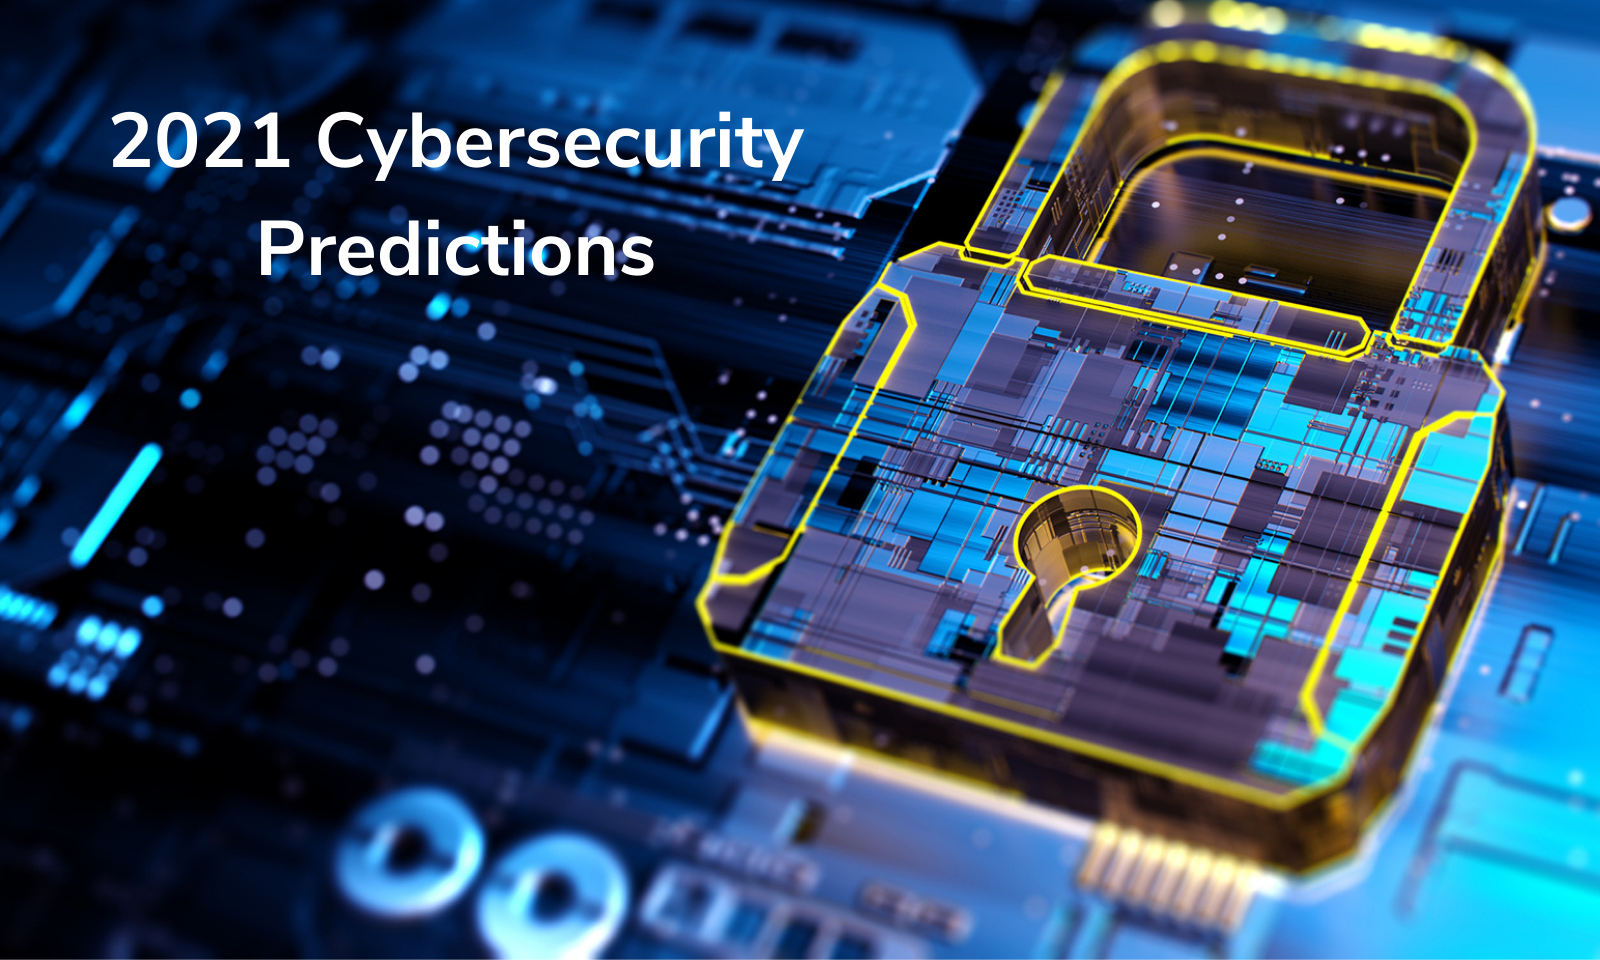 2021 Cybersecurity Predictions